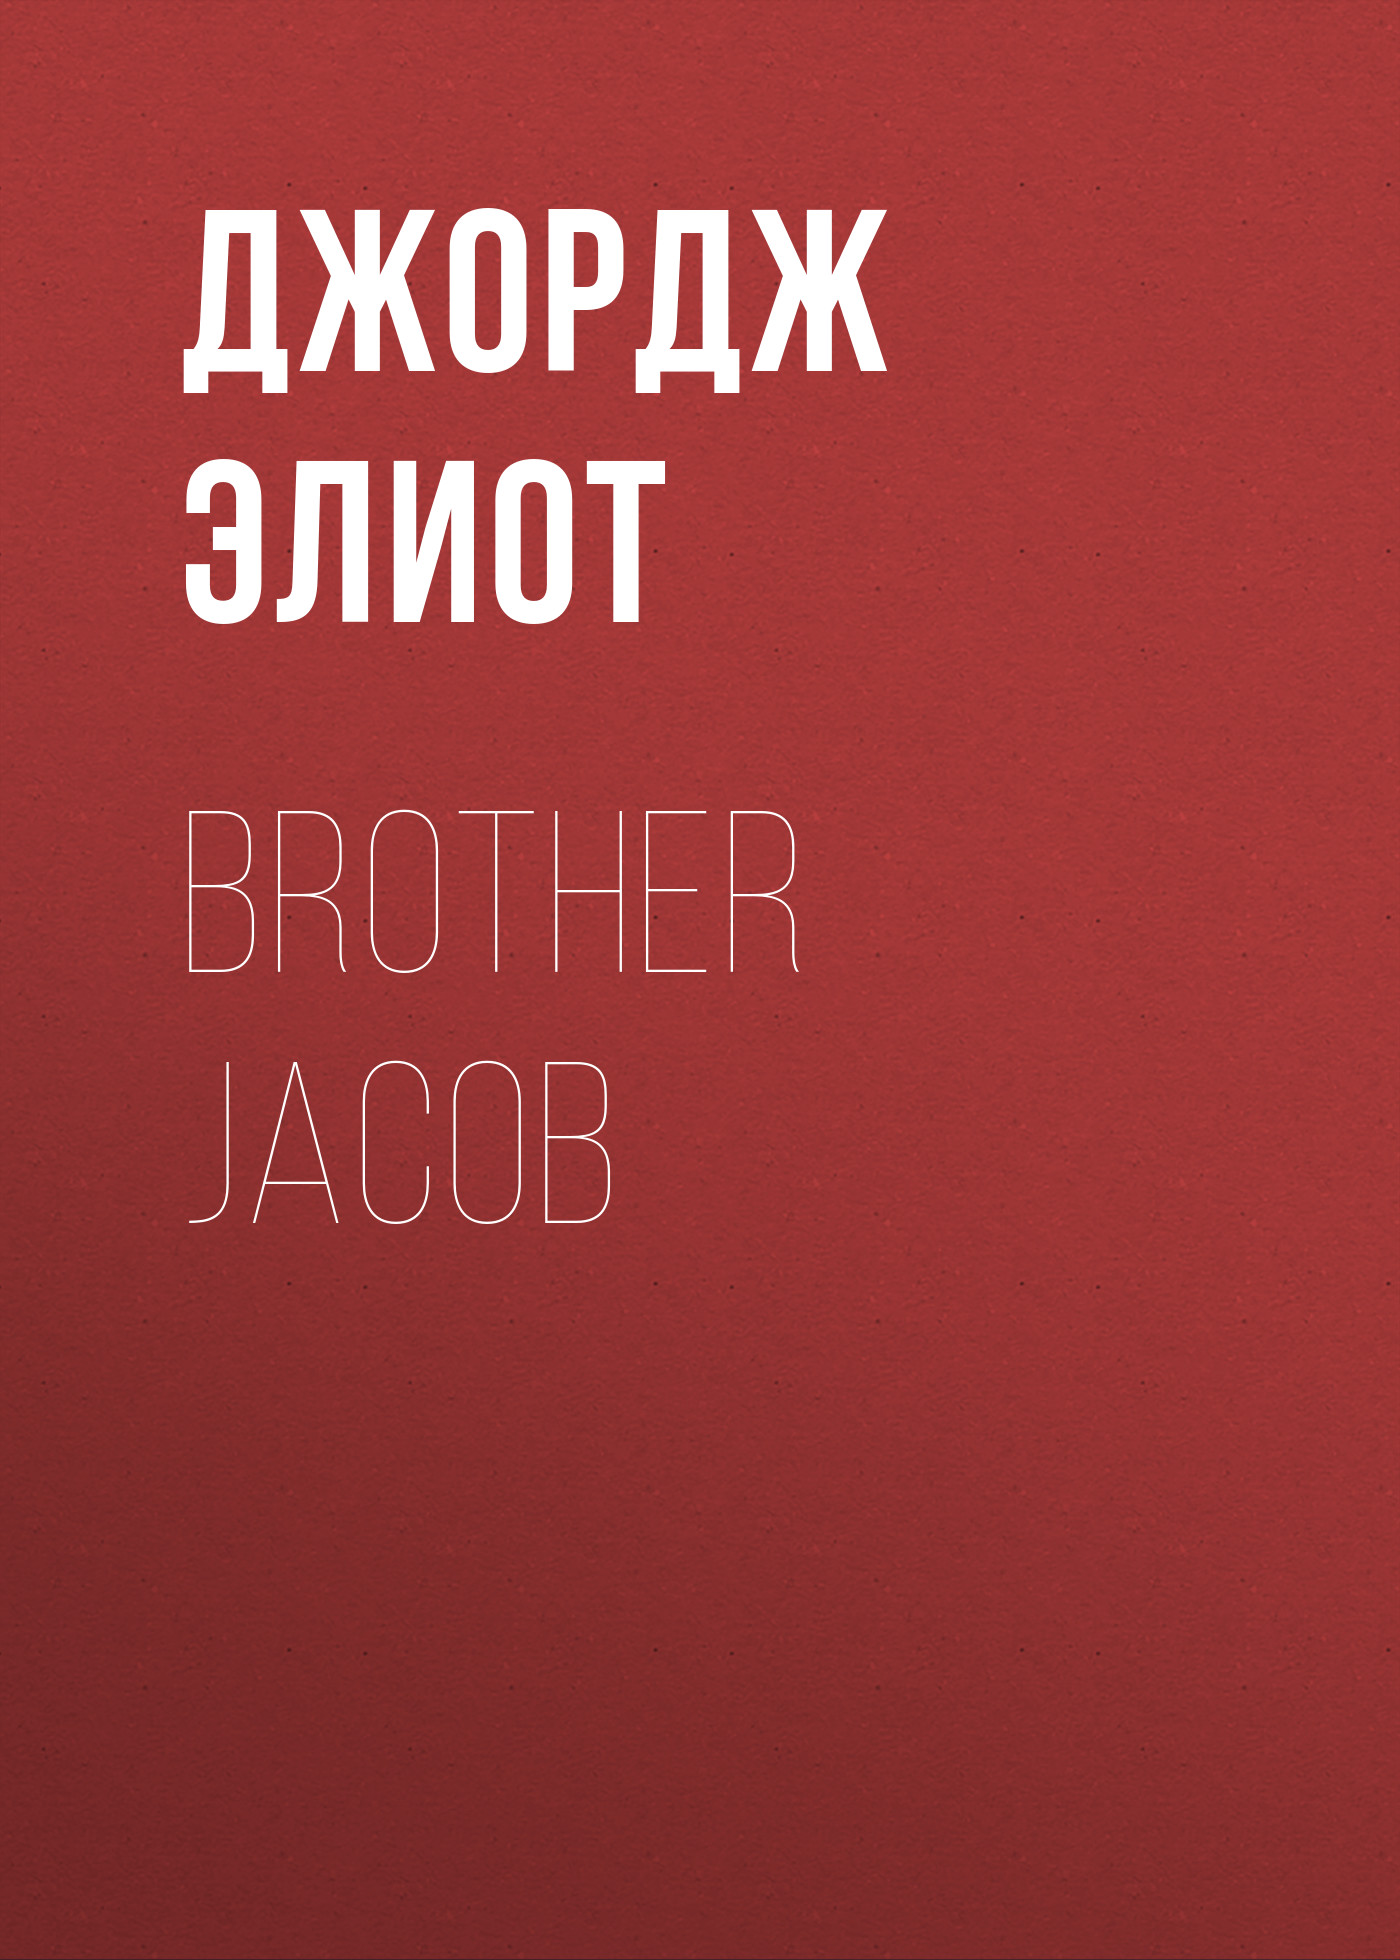 Джордж Элиот Brother Jacob джордж элиот brother jacob